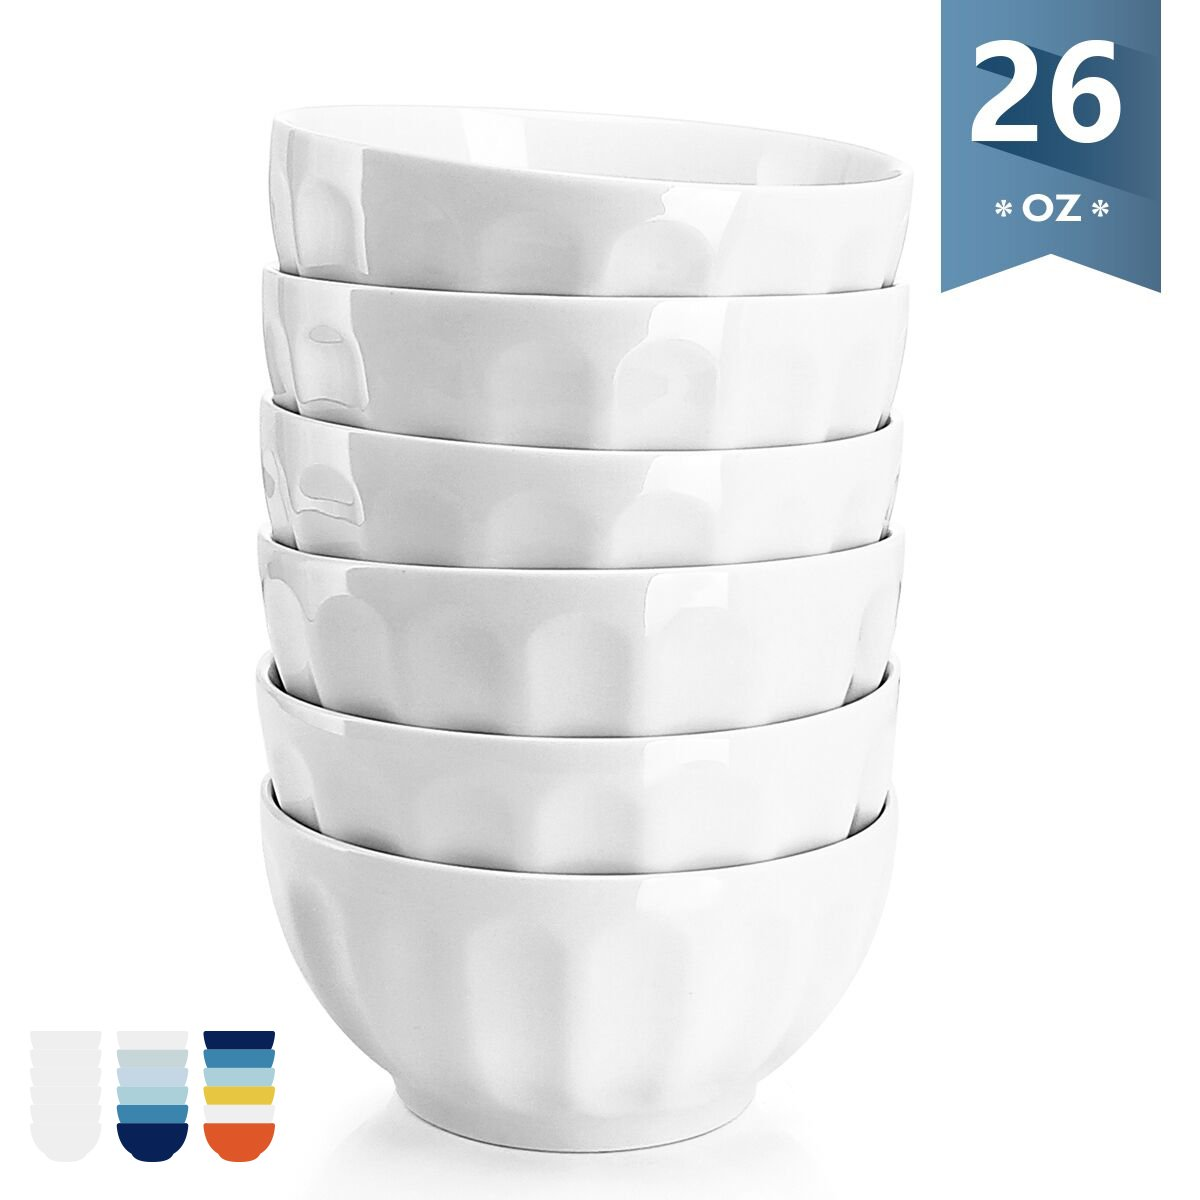 Sweese 1108 Porcelain Fluted Bowl Set - 26 OZ Deep and Microwavable for Cereal, Soup - Set of 6, White